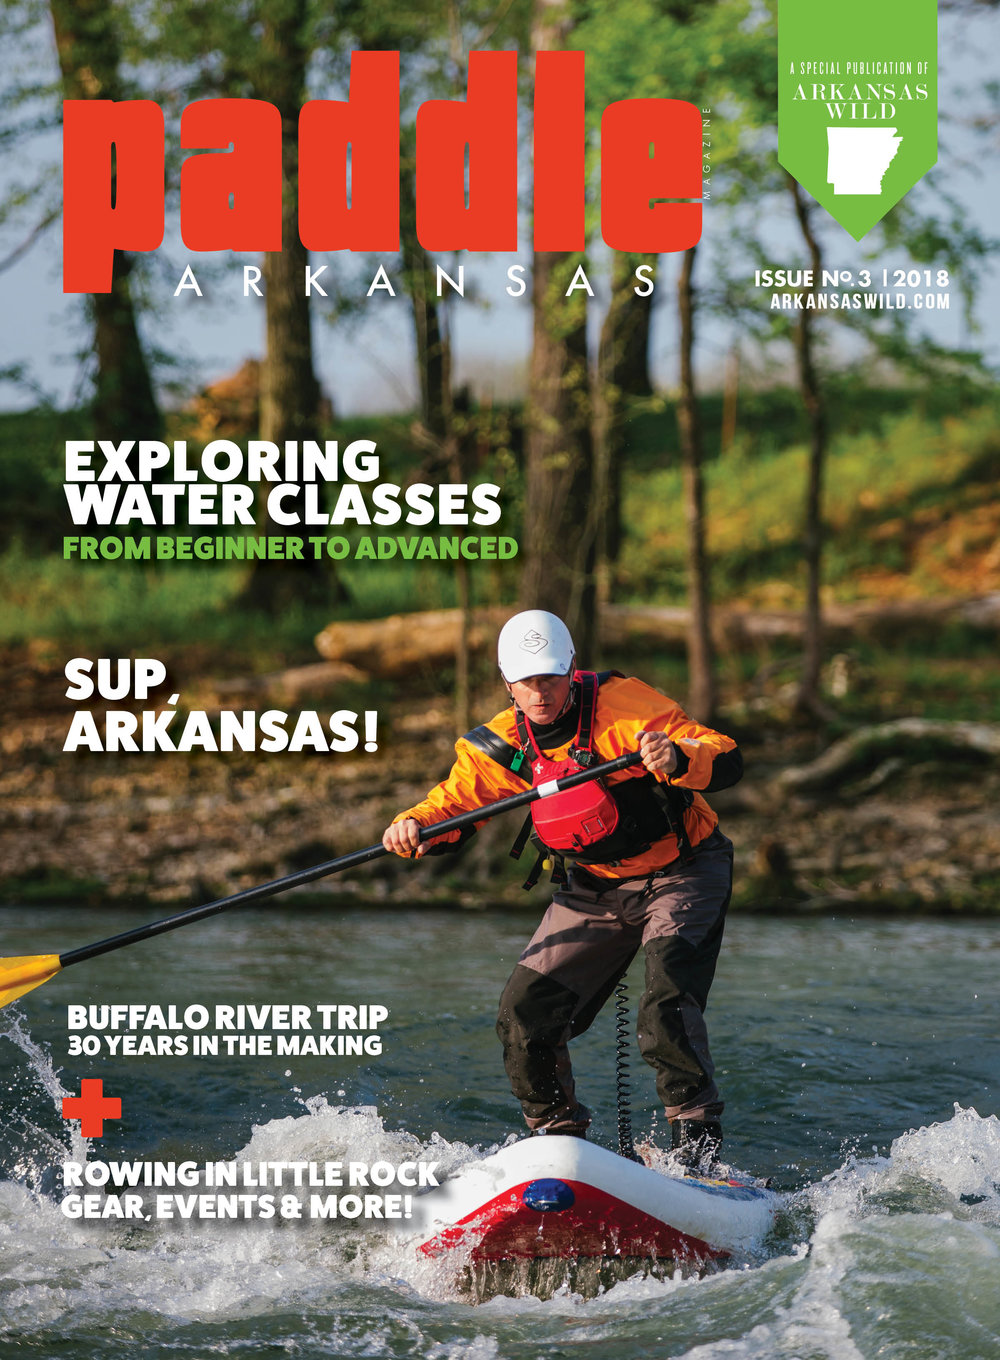 Arkansas Paddle 2018 COVER.jpg